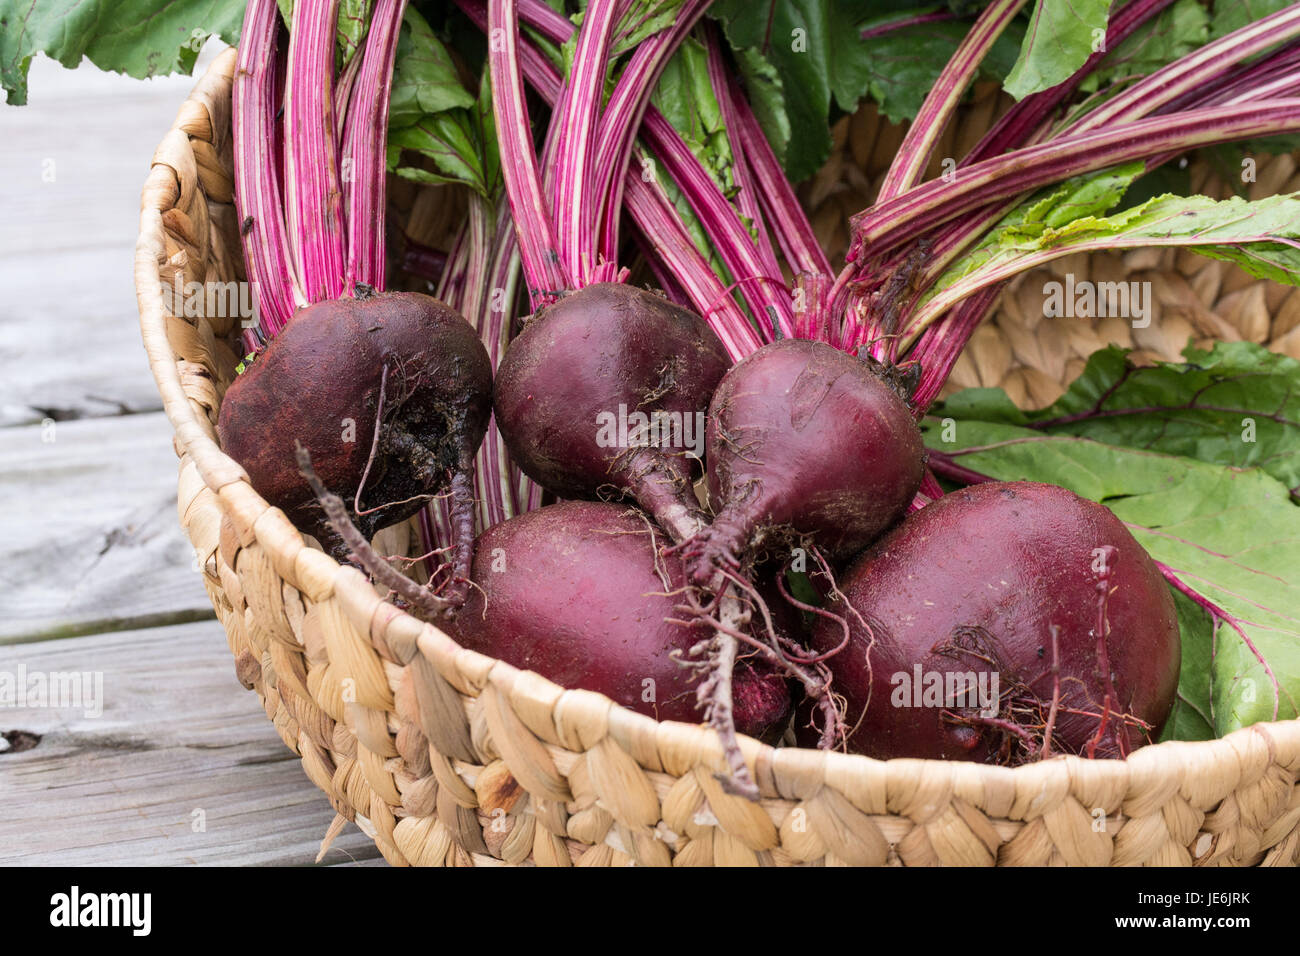 Closeup-Fresh Beets from the garden with rich red colors set off by the green leaves - healthy farm to table food Stock Photo